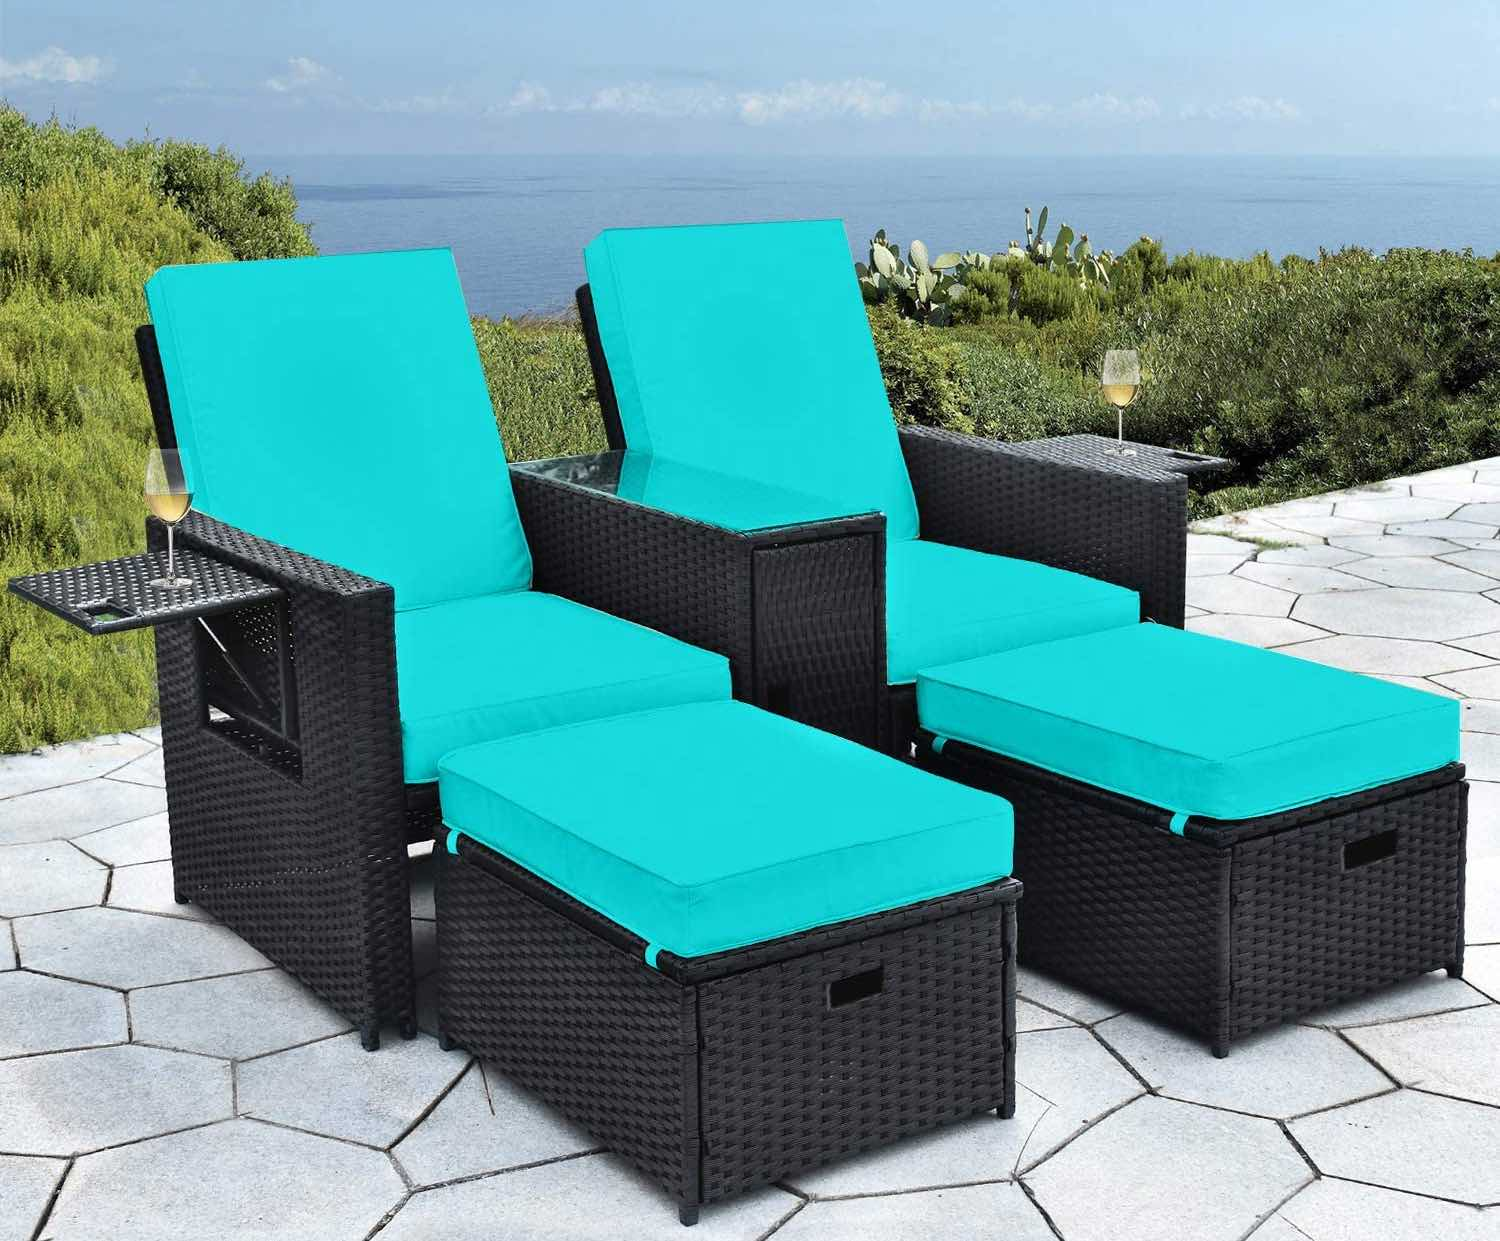 B BAIJIAWEI 5pcs Patio Wicker Loveseat – Outdoor Rattan Sofa Set